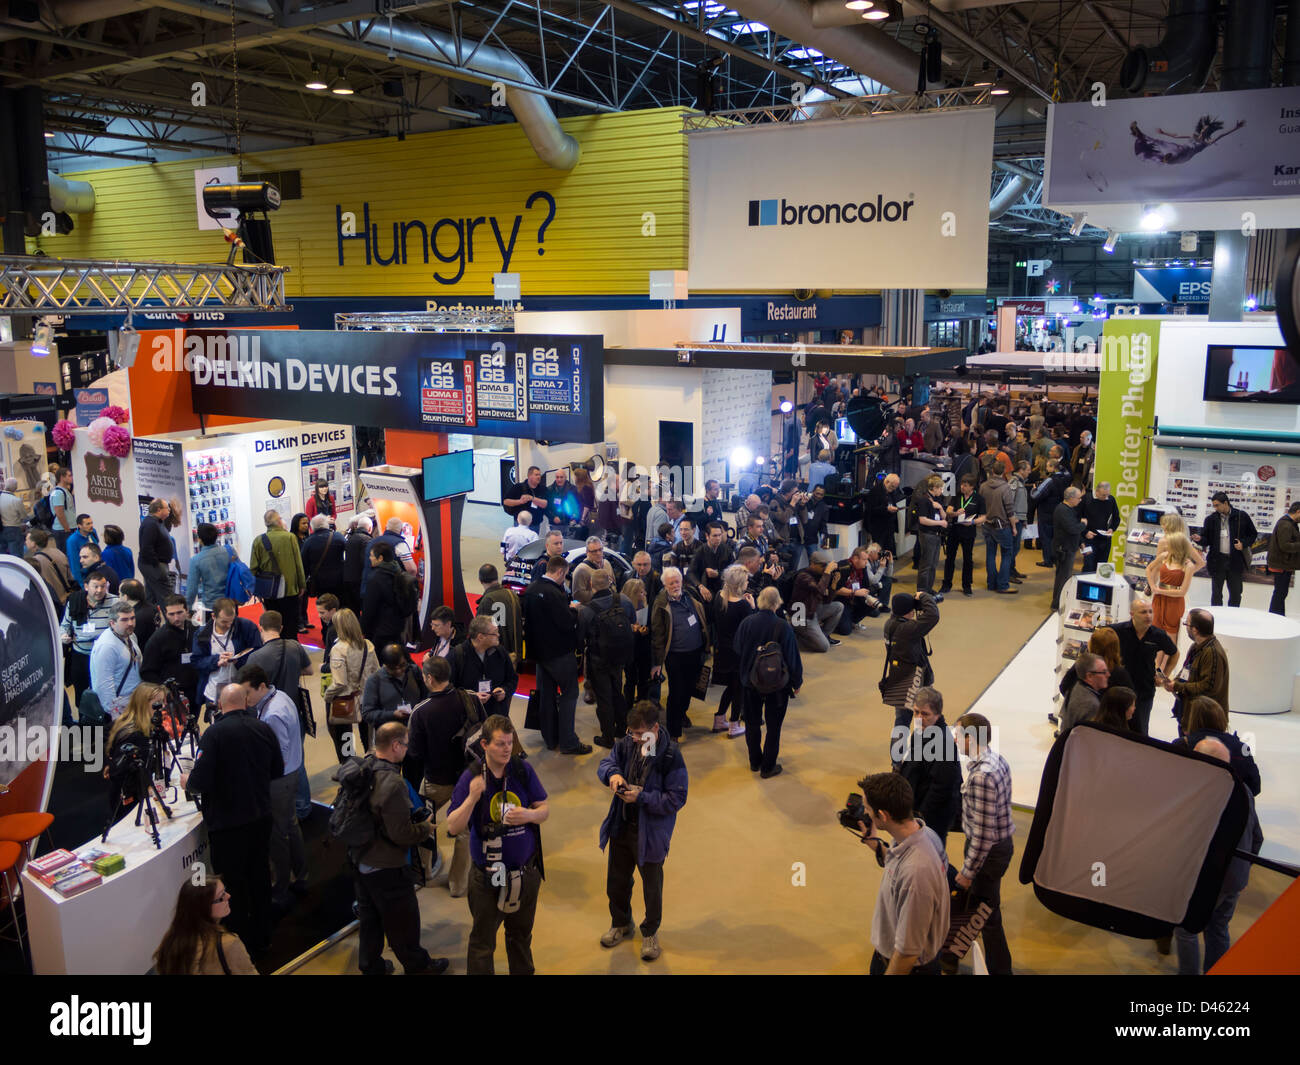 D Printing Exhibition Birmingham : Camera trade show focus on imaging held in nec birmingham